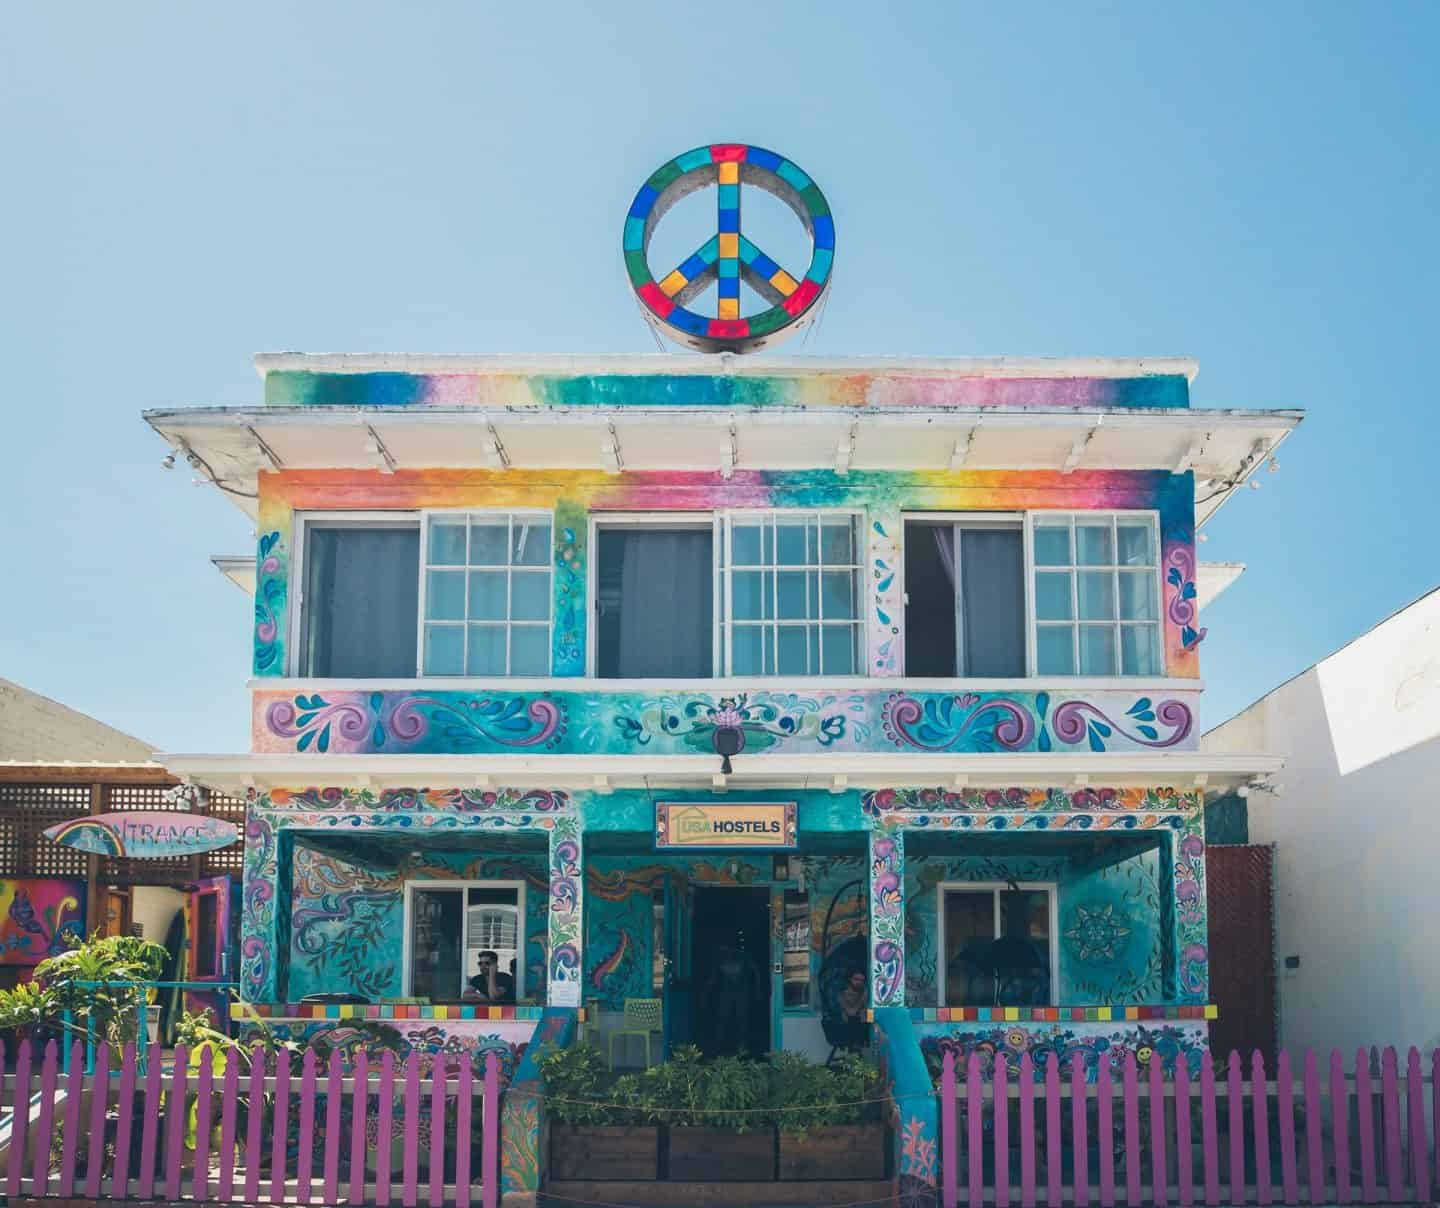 A Bed & Breakfast Fit for the Hippie in All of Us